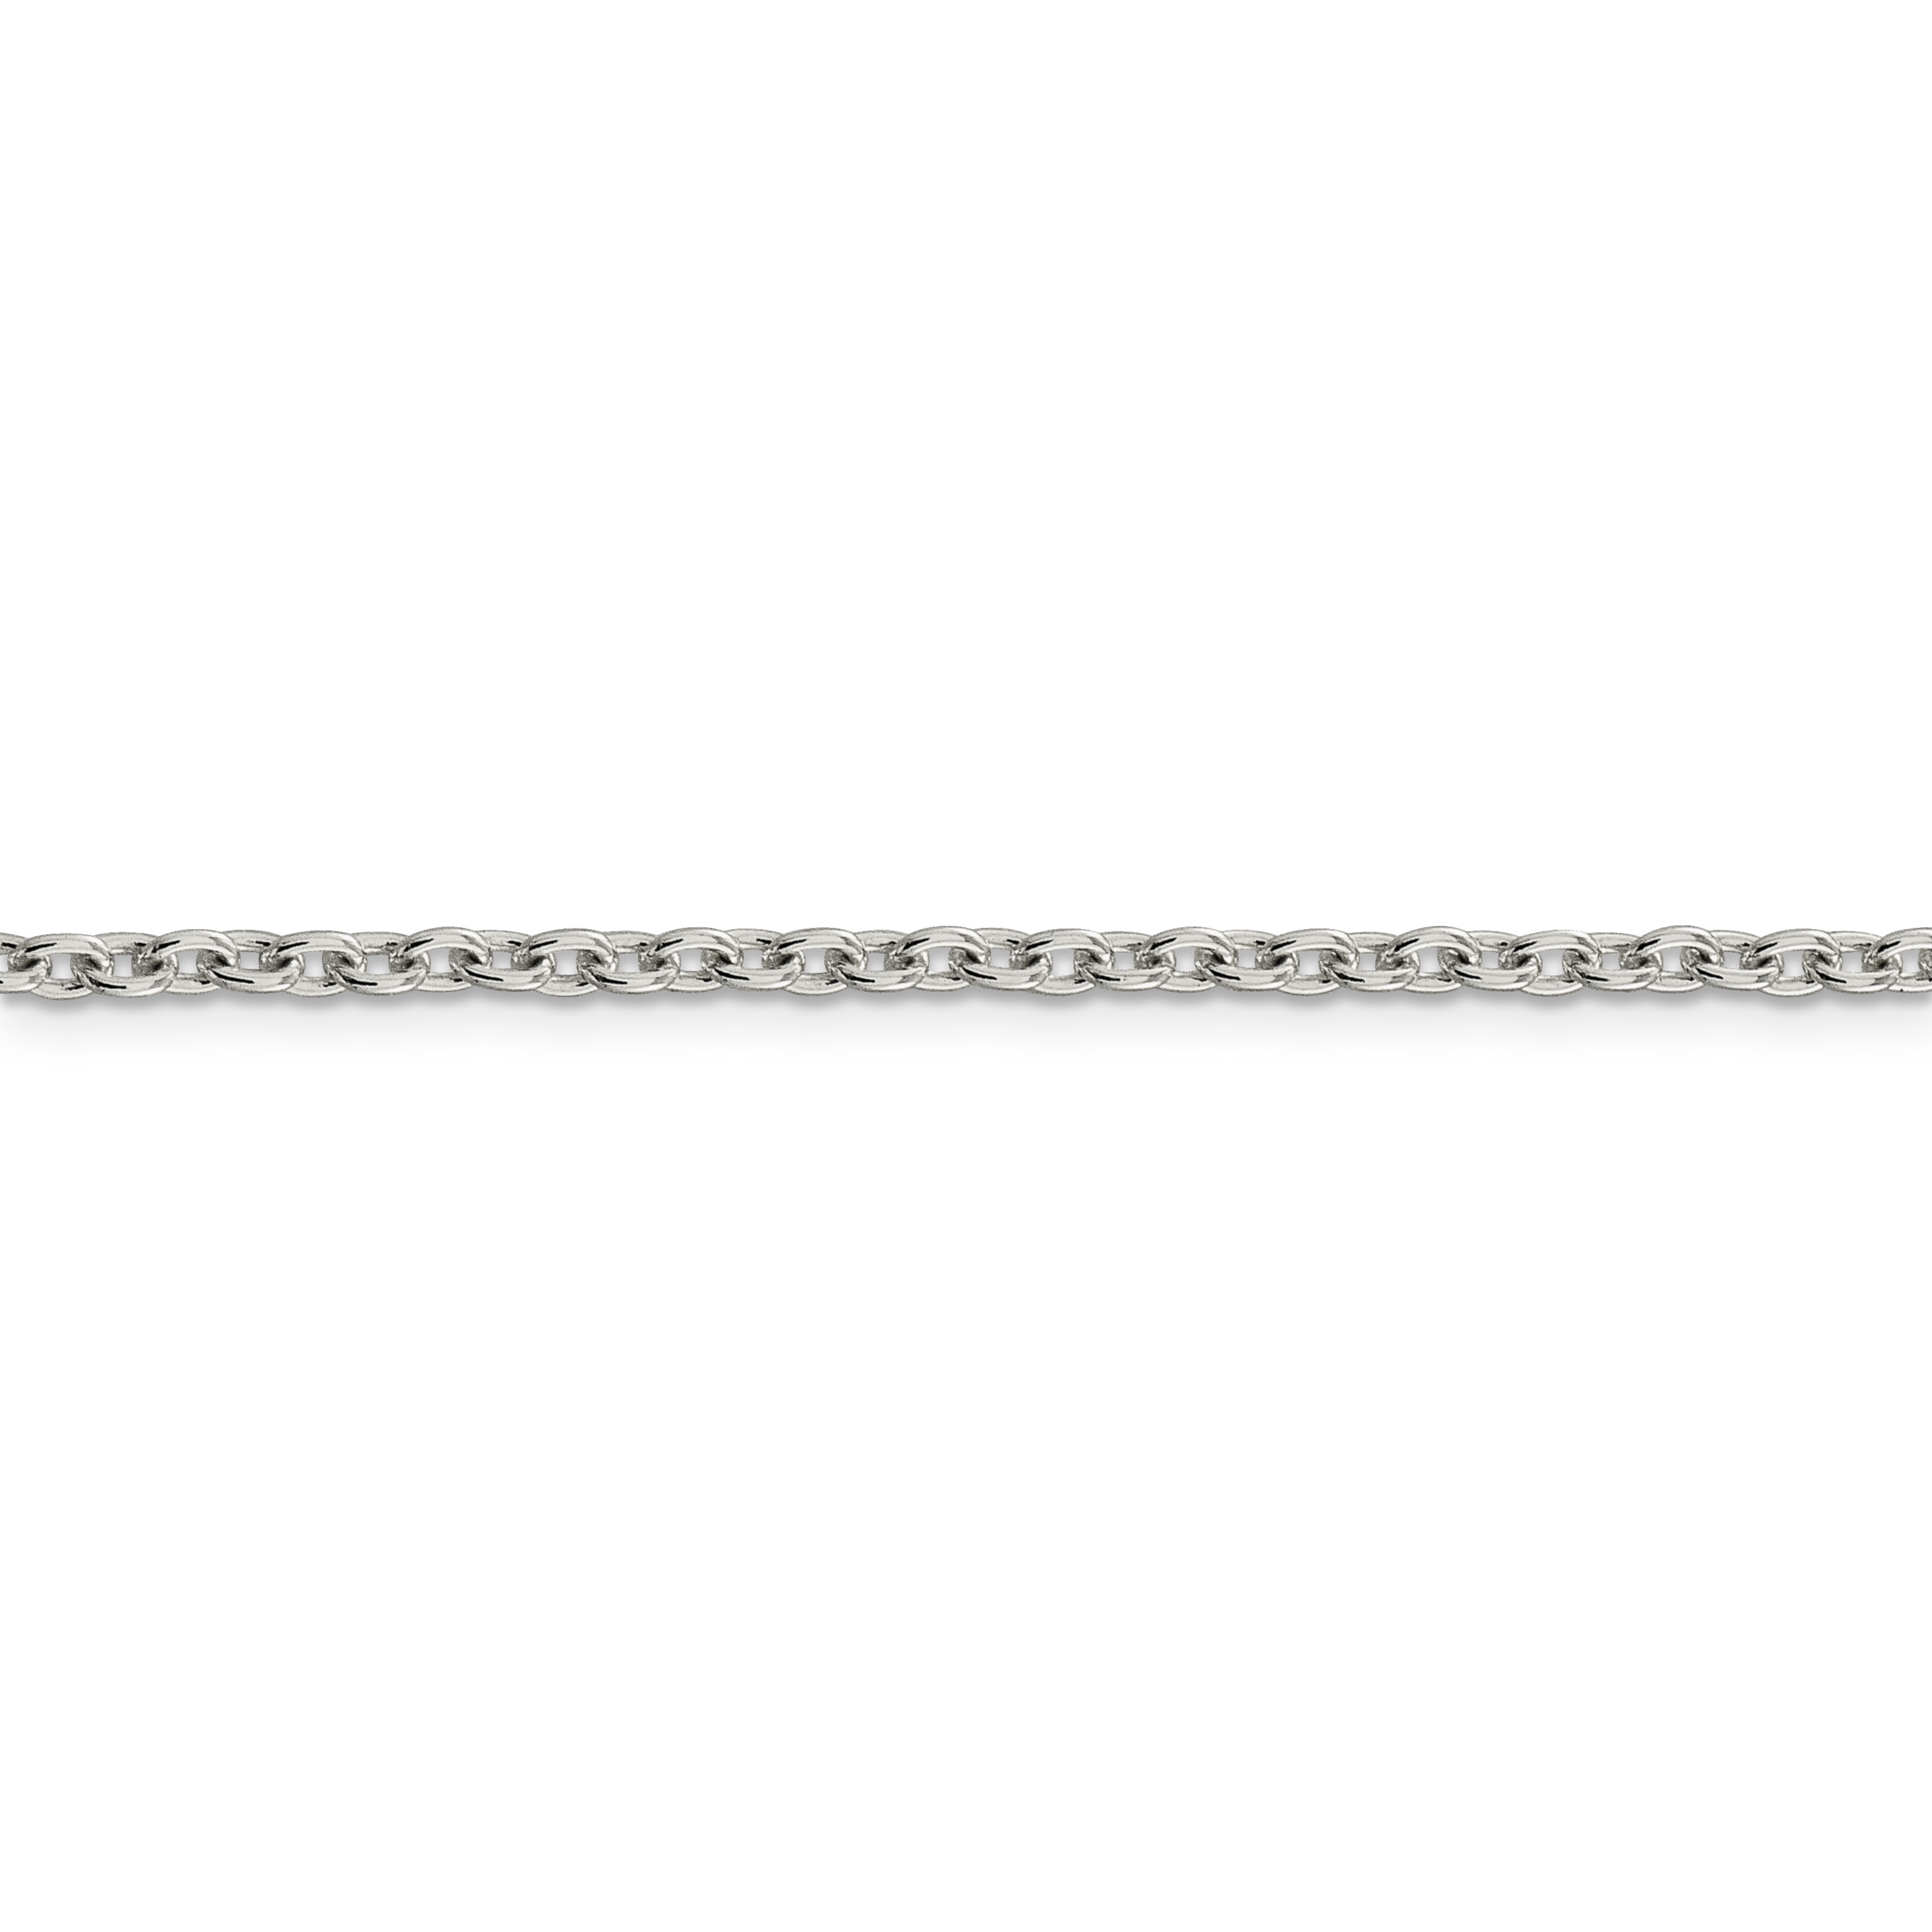 925 Sterling Silver 2.75mm Cable Chain 20 Inch - image 3 de 5